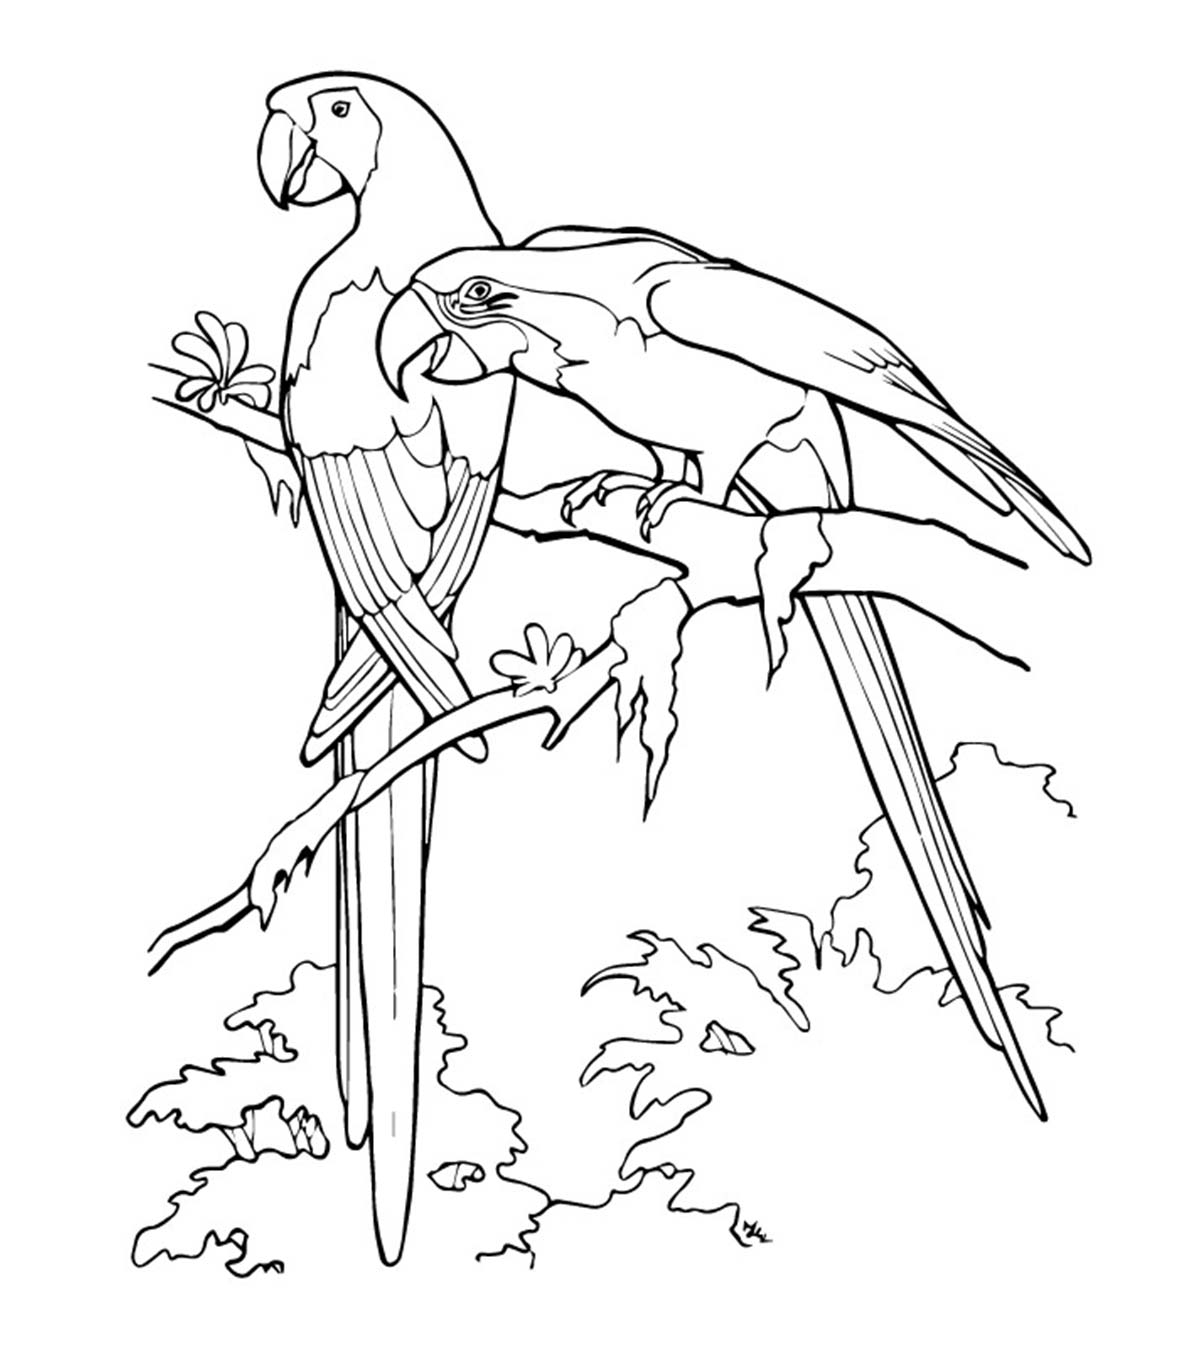 Love Bird Coloring Pages 25 Cute Parrot Coloring Pages Your Toddler Will Love To Color